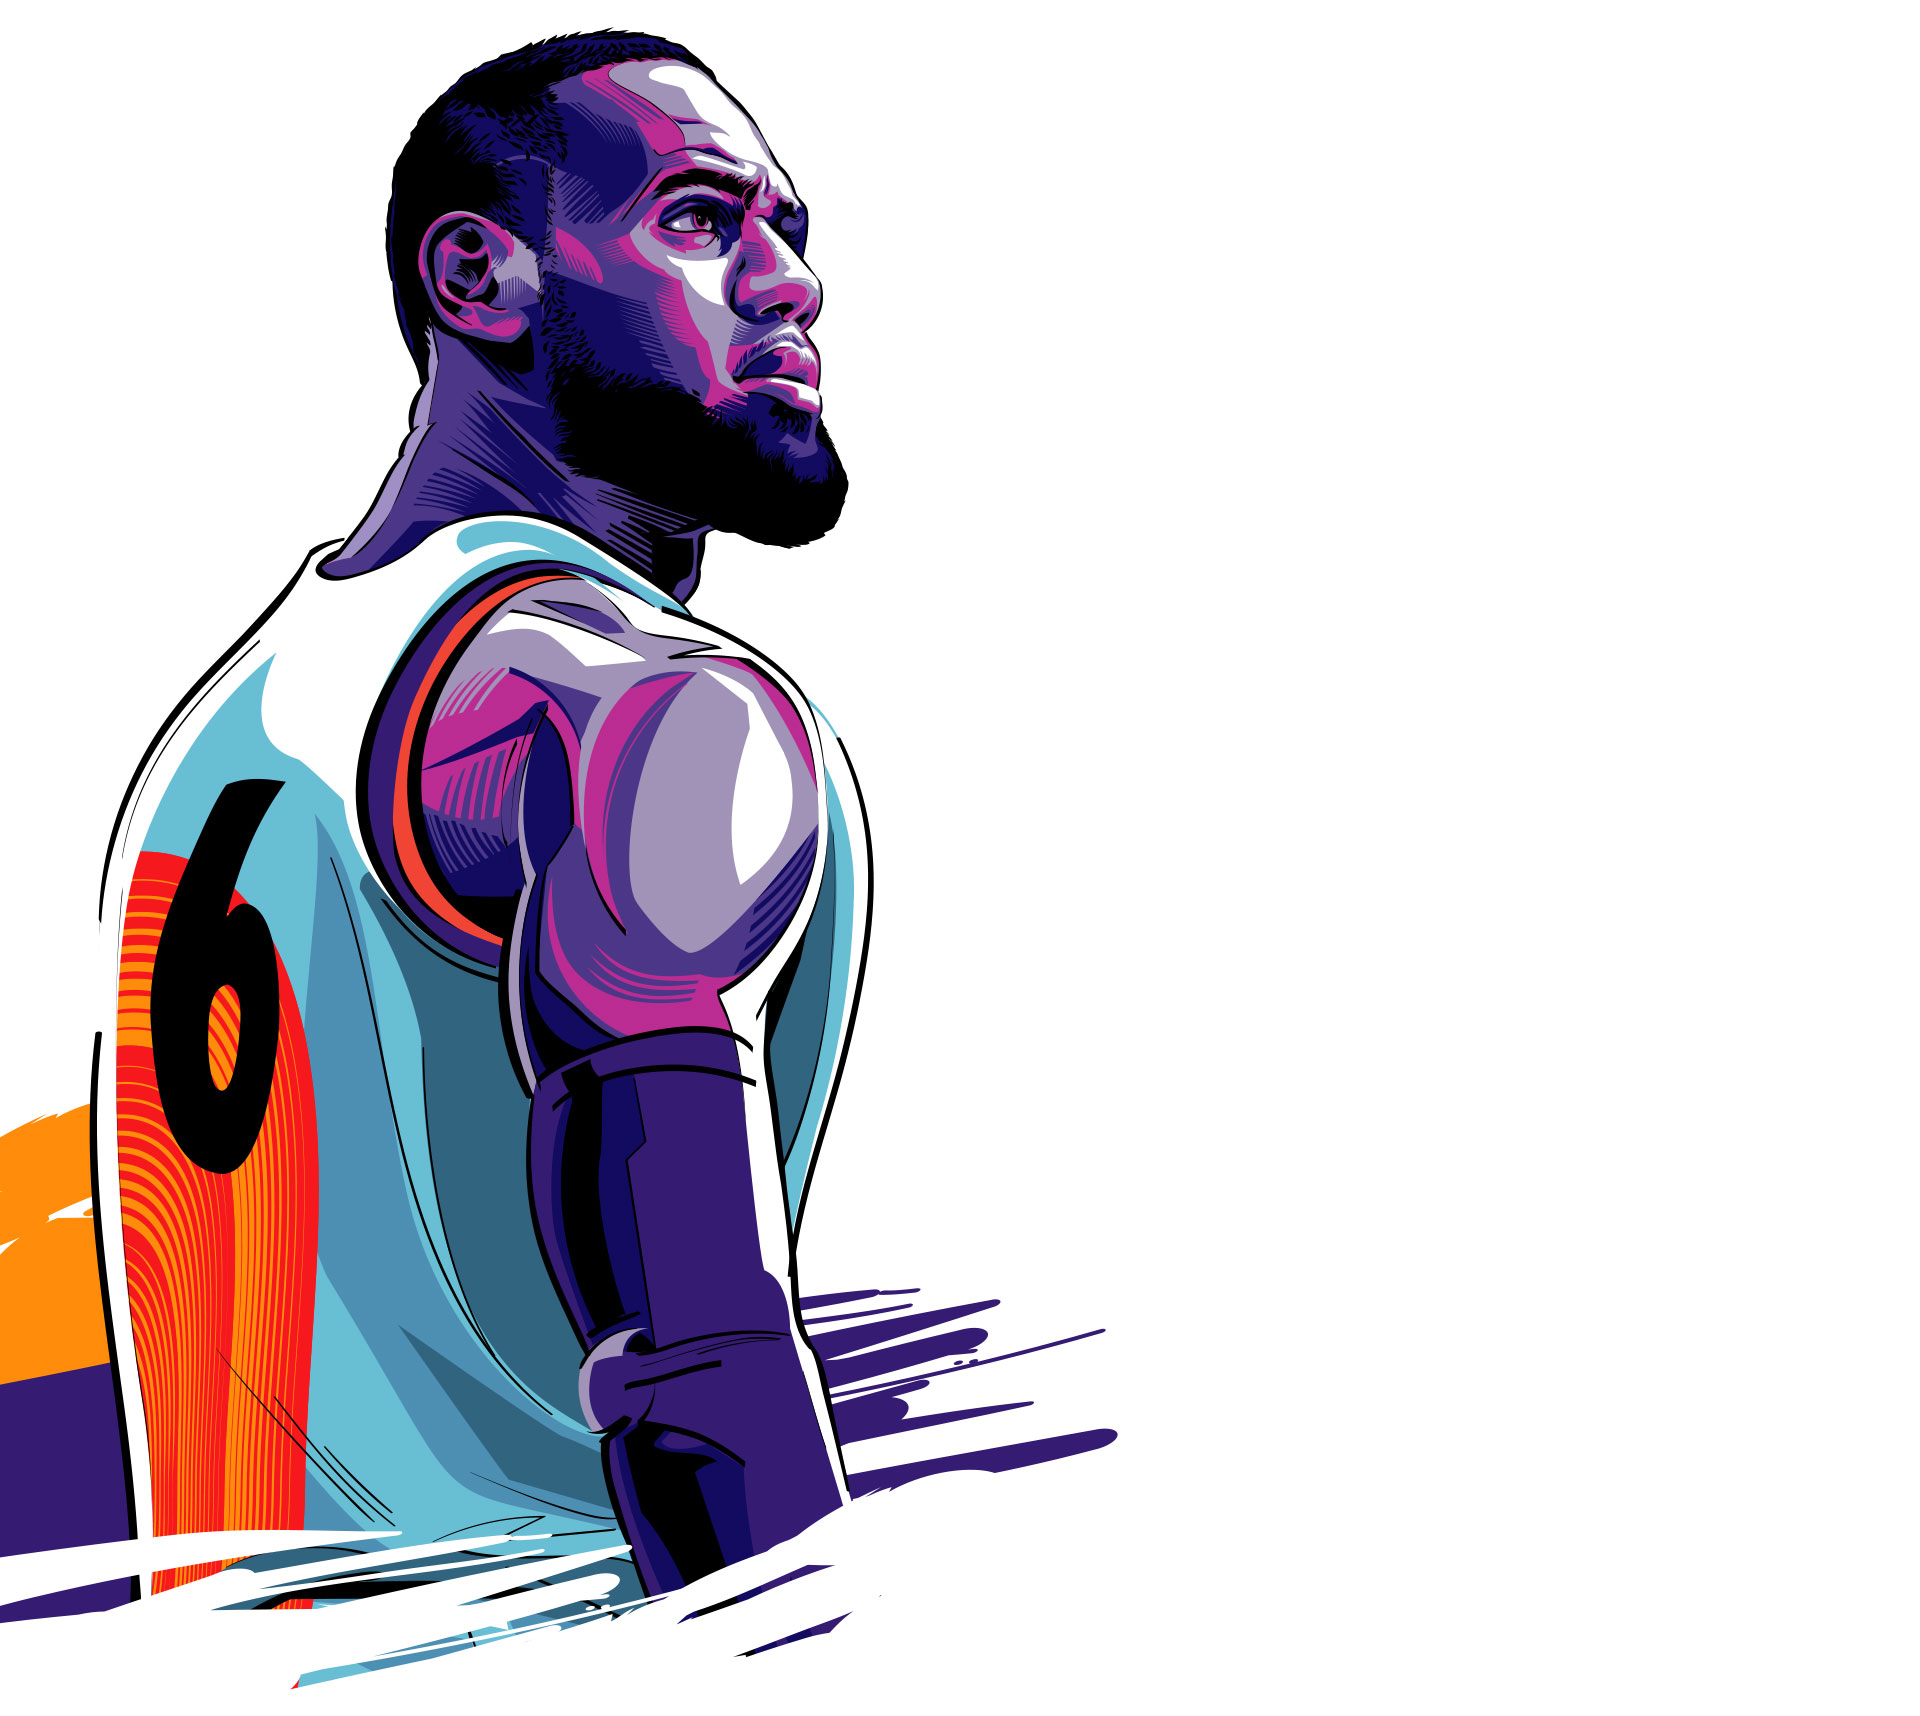 Illustration of Lebron James in a Basketball jersey